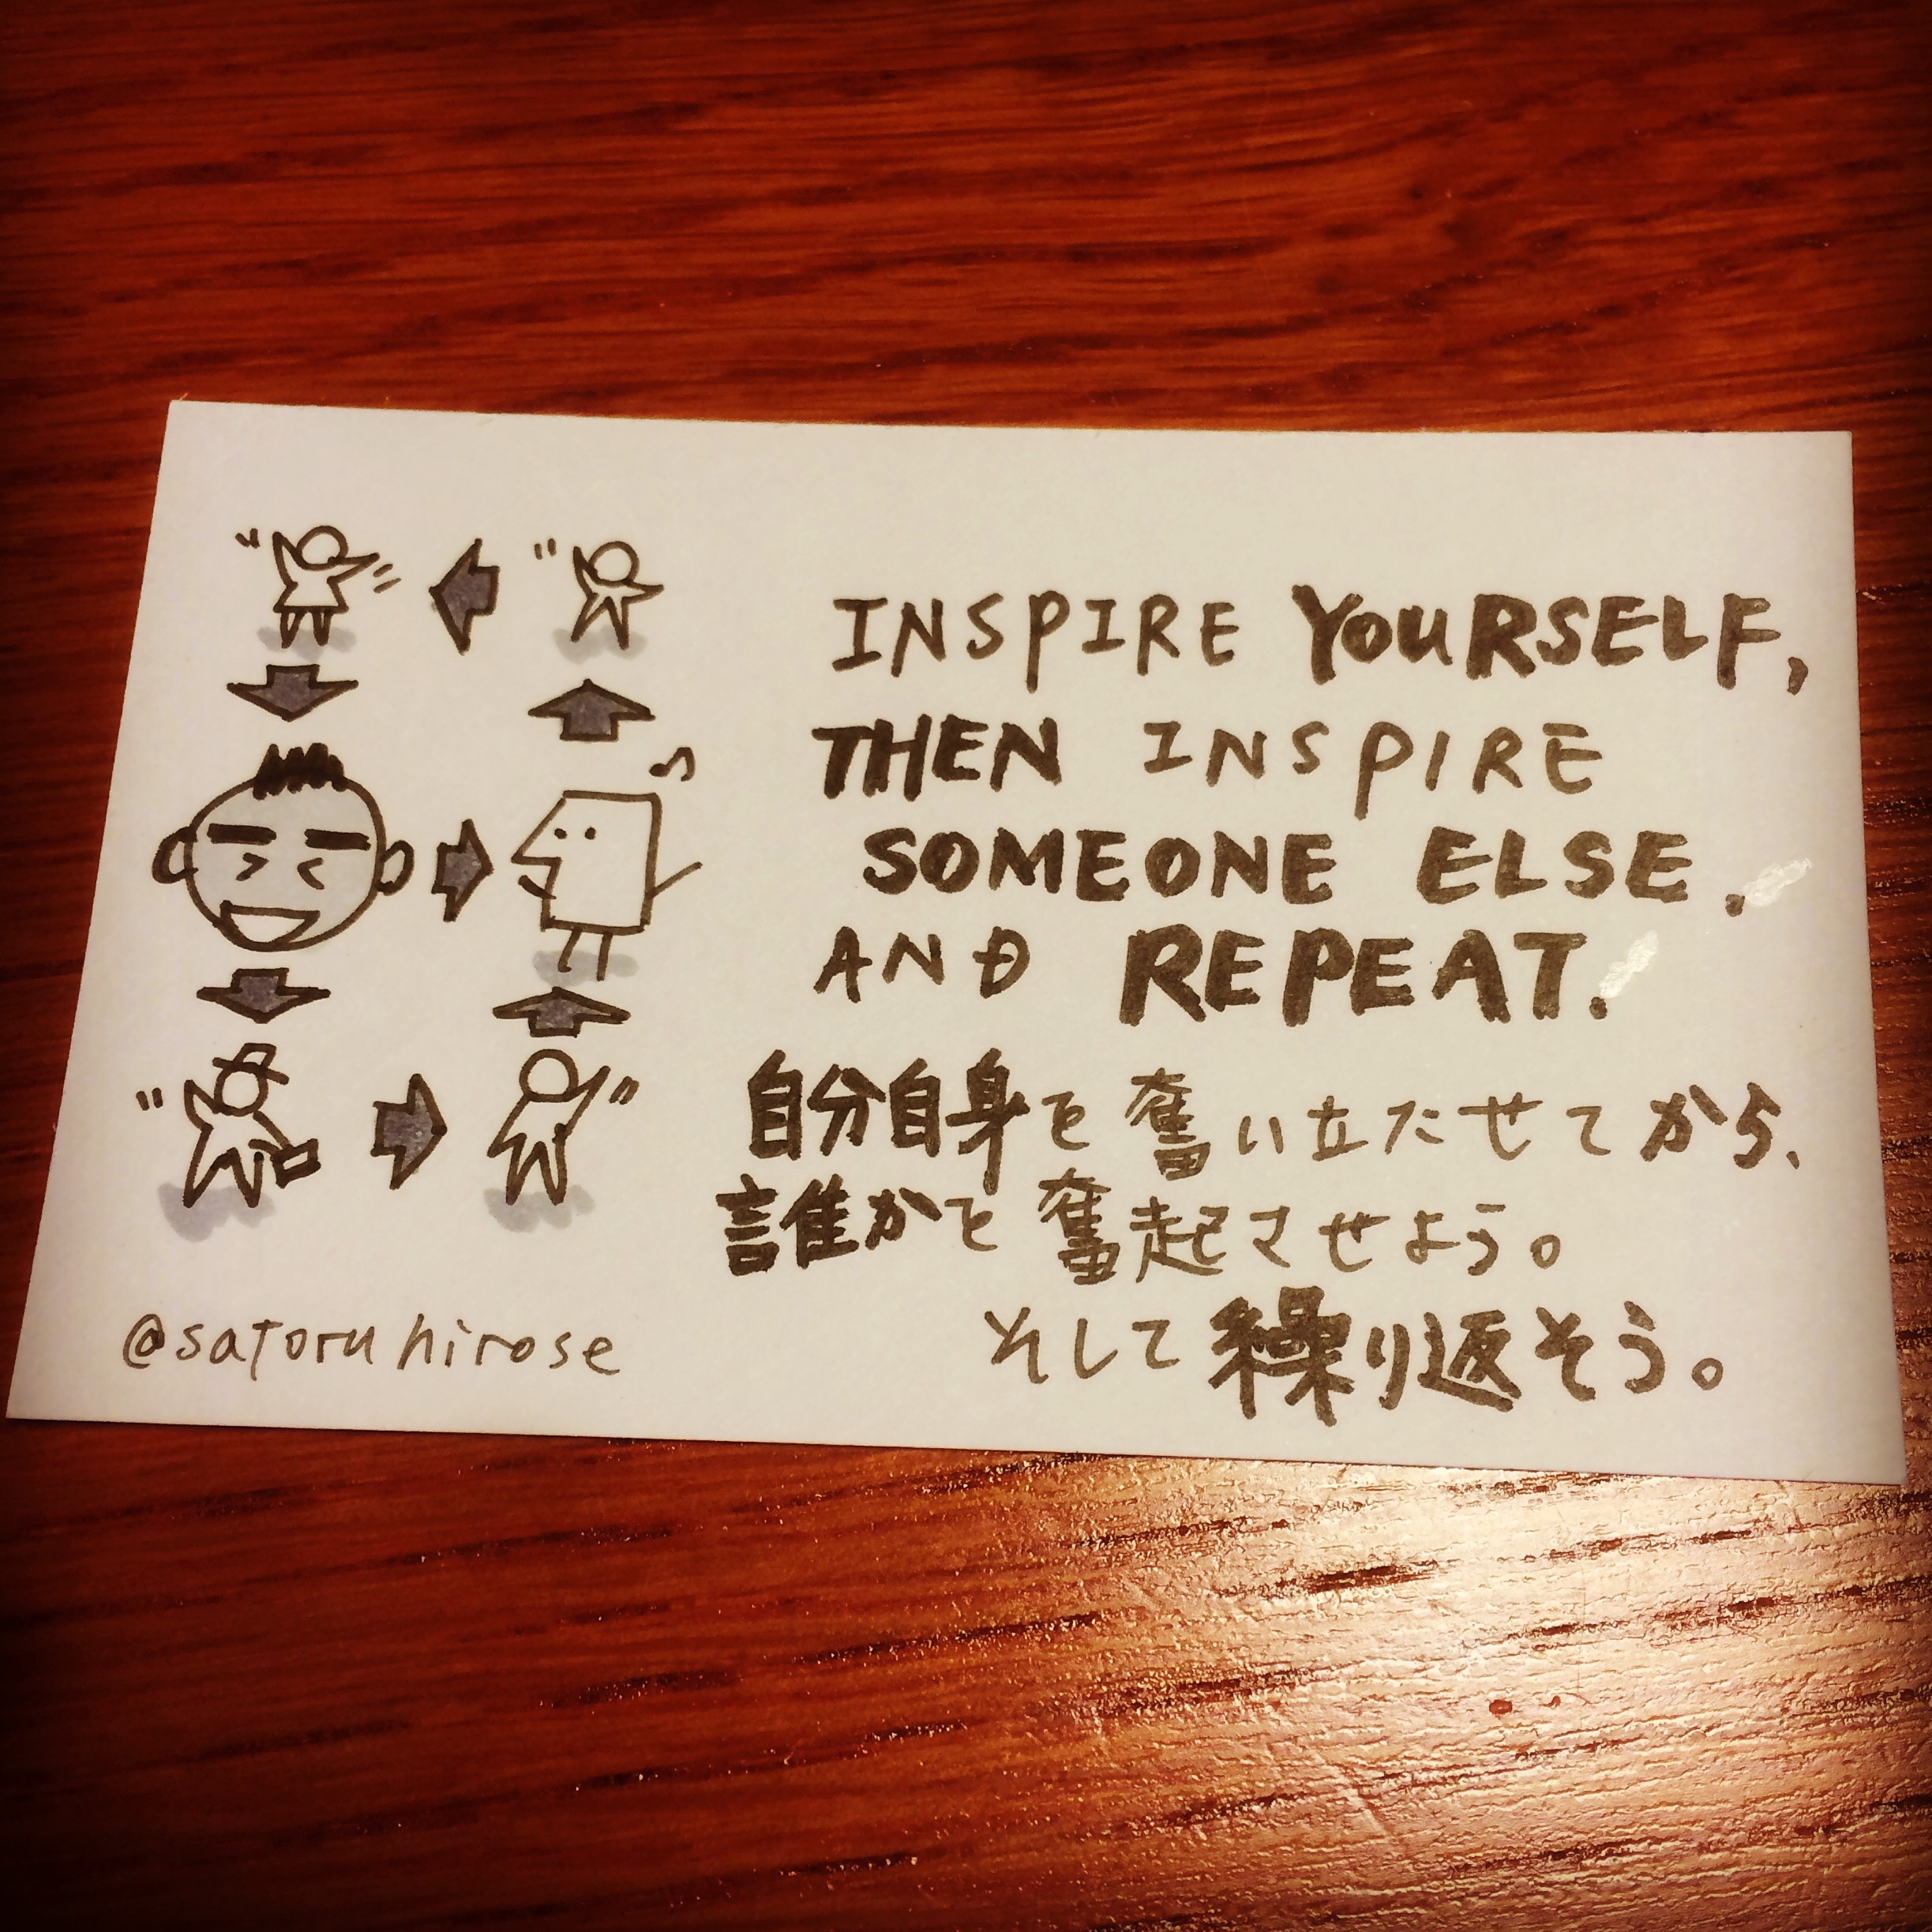 Inspire yourself, then inspire someone else. And repeat.